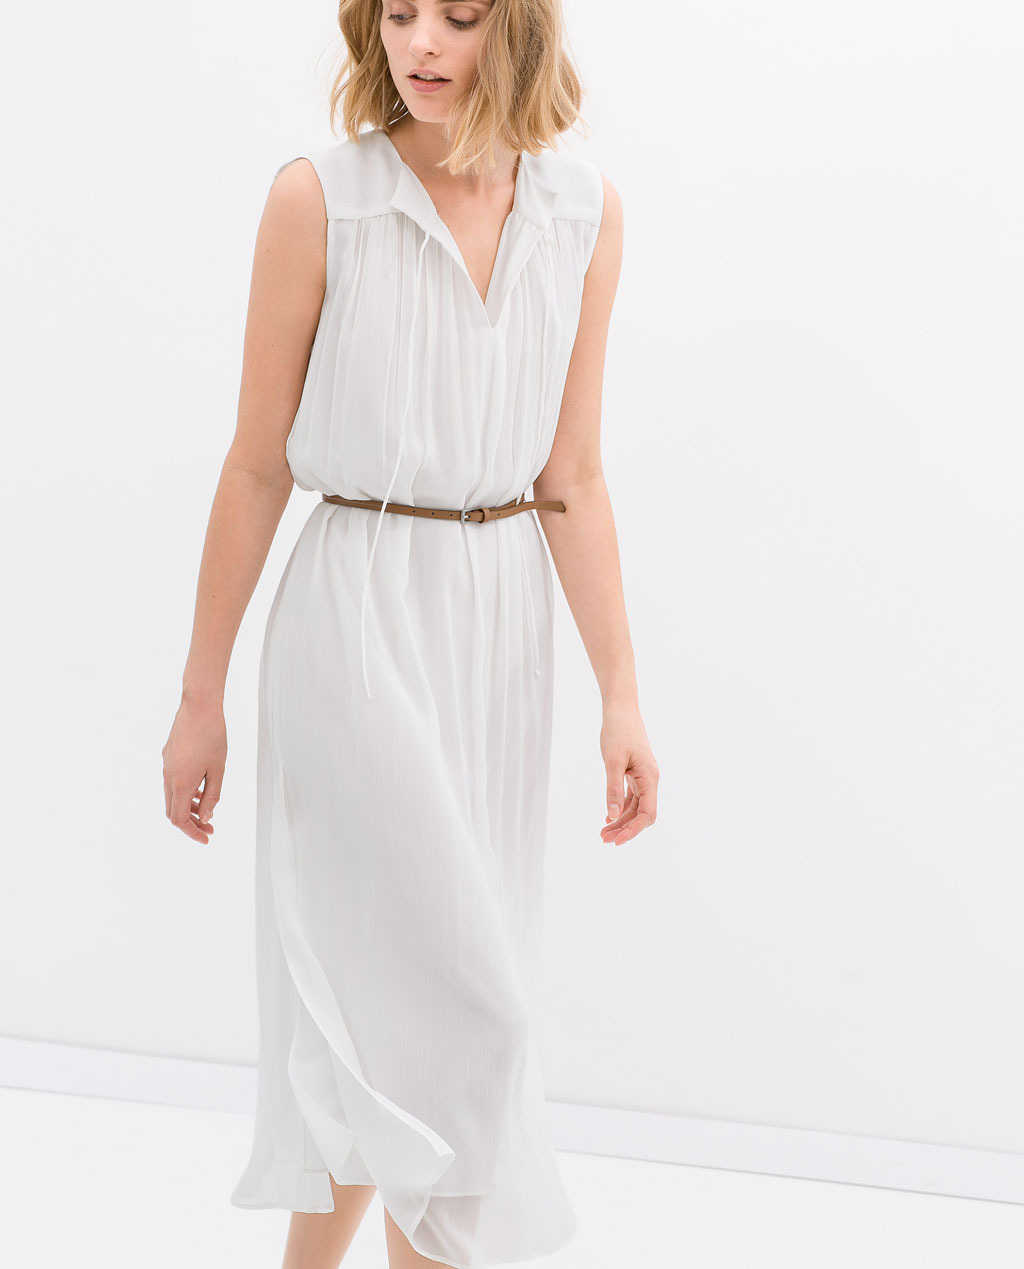 Long Dress With Belt - style: tea dress; length: calf length; neckline: v-neck; fit: fitted at waist; pattern: plain; sleeve style: sleeveless; waist detail: belted waist/tie at waist/drawstring; predominant colour: white; occasions: casual, holiday, creative work; fibres: viscose/rayon - 100%; sleeve length: sleeveless; texture group: sheer fabrics/chiffon/organza etc.; pattern type: fabric; season: s/s 2014